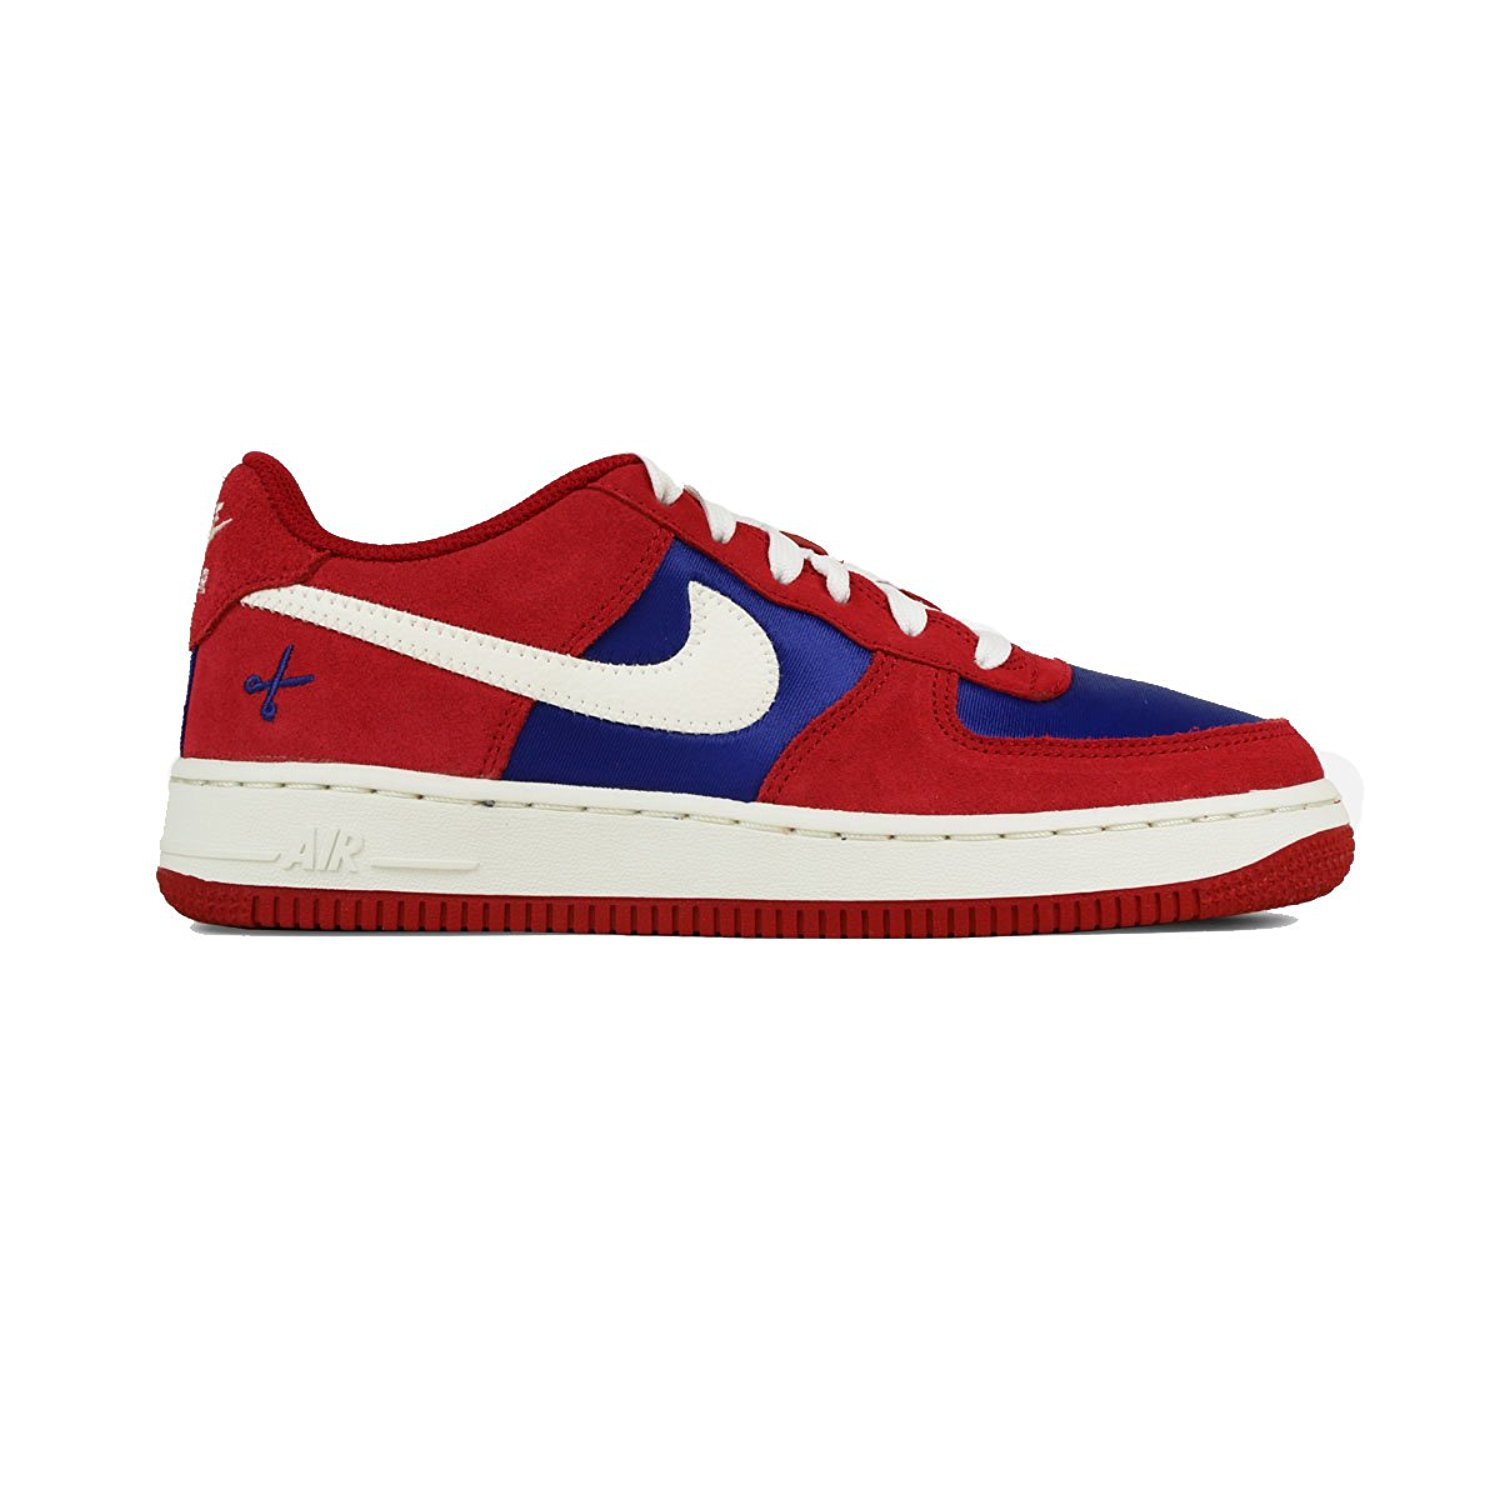 check out 20b32 0df72 Nike 596728-626  Air Force 1 Low Casual Grade School Red White